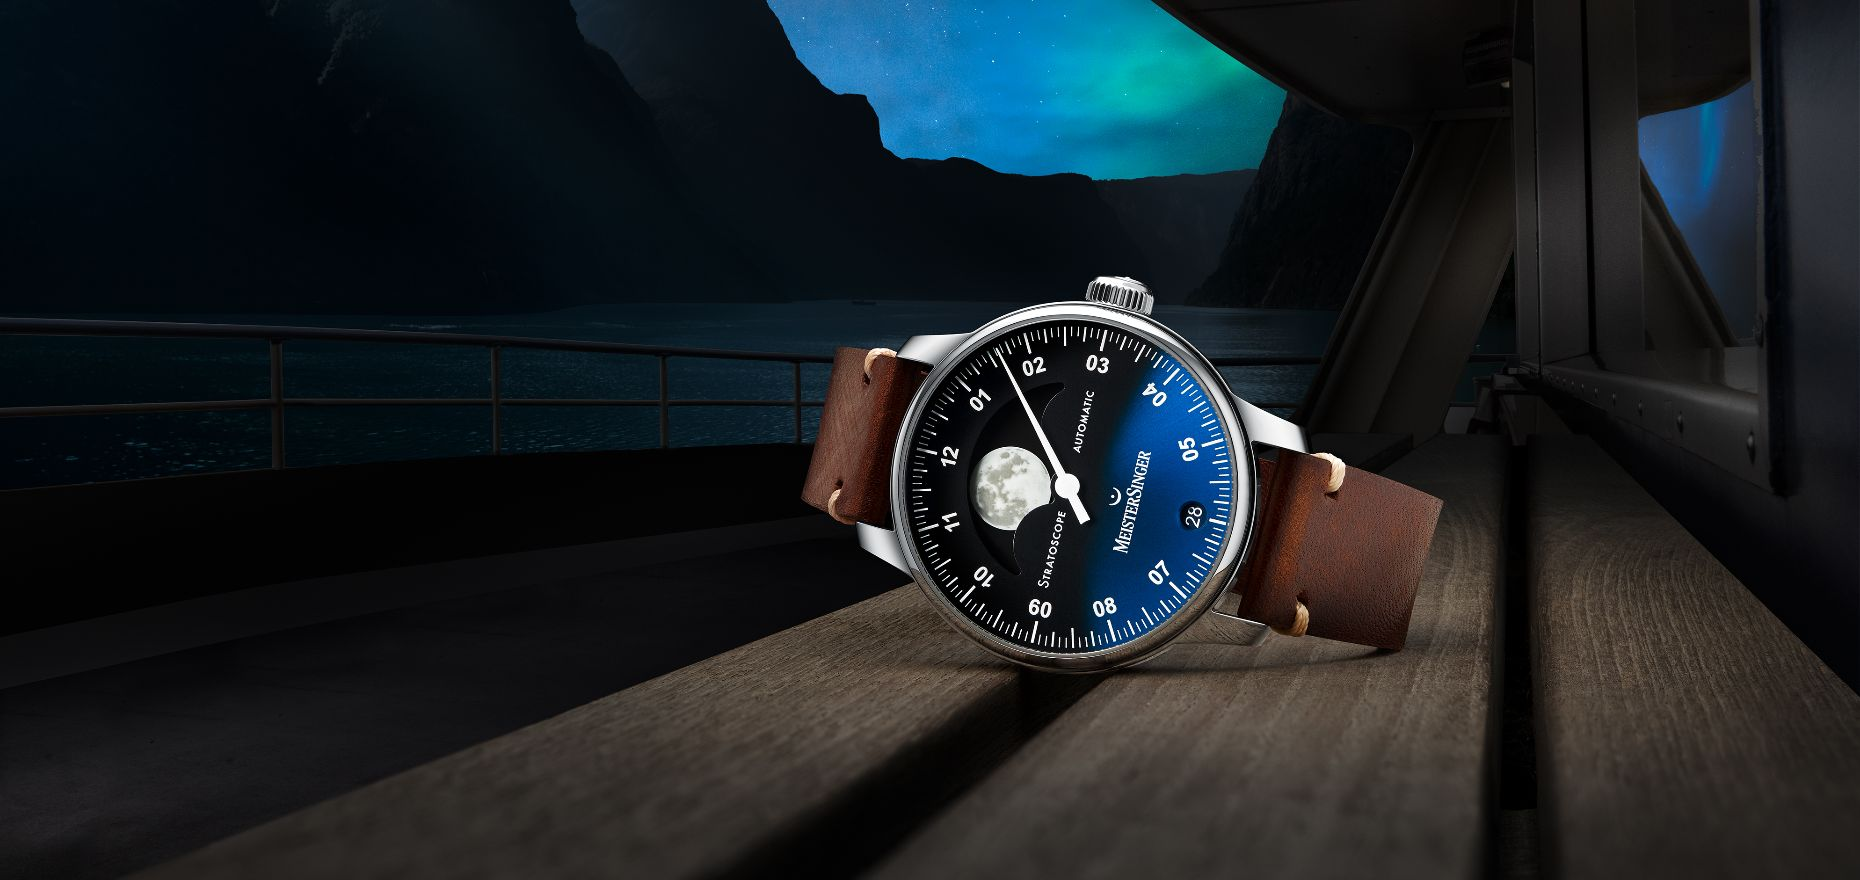 Not Your Everyday Moon Phase: The MeisterSinger Stratoscope Focuses On Precision And Luminosity